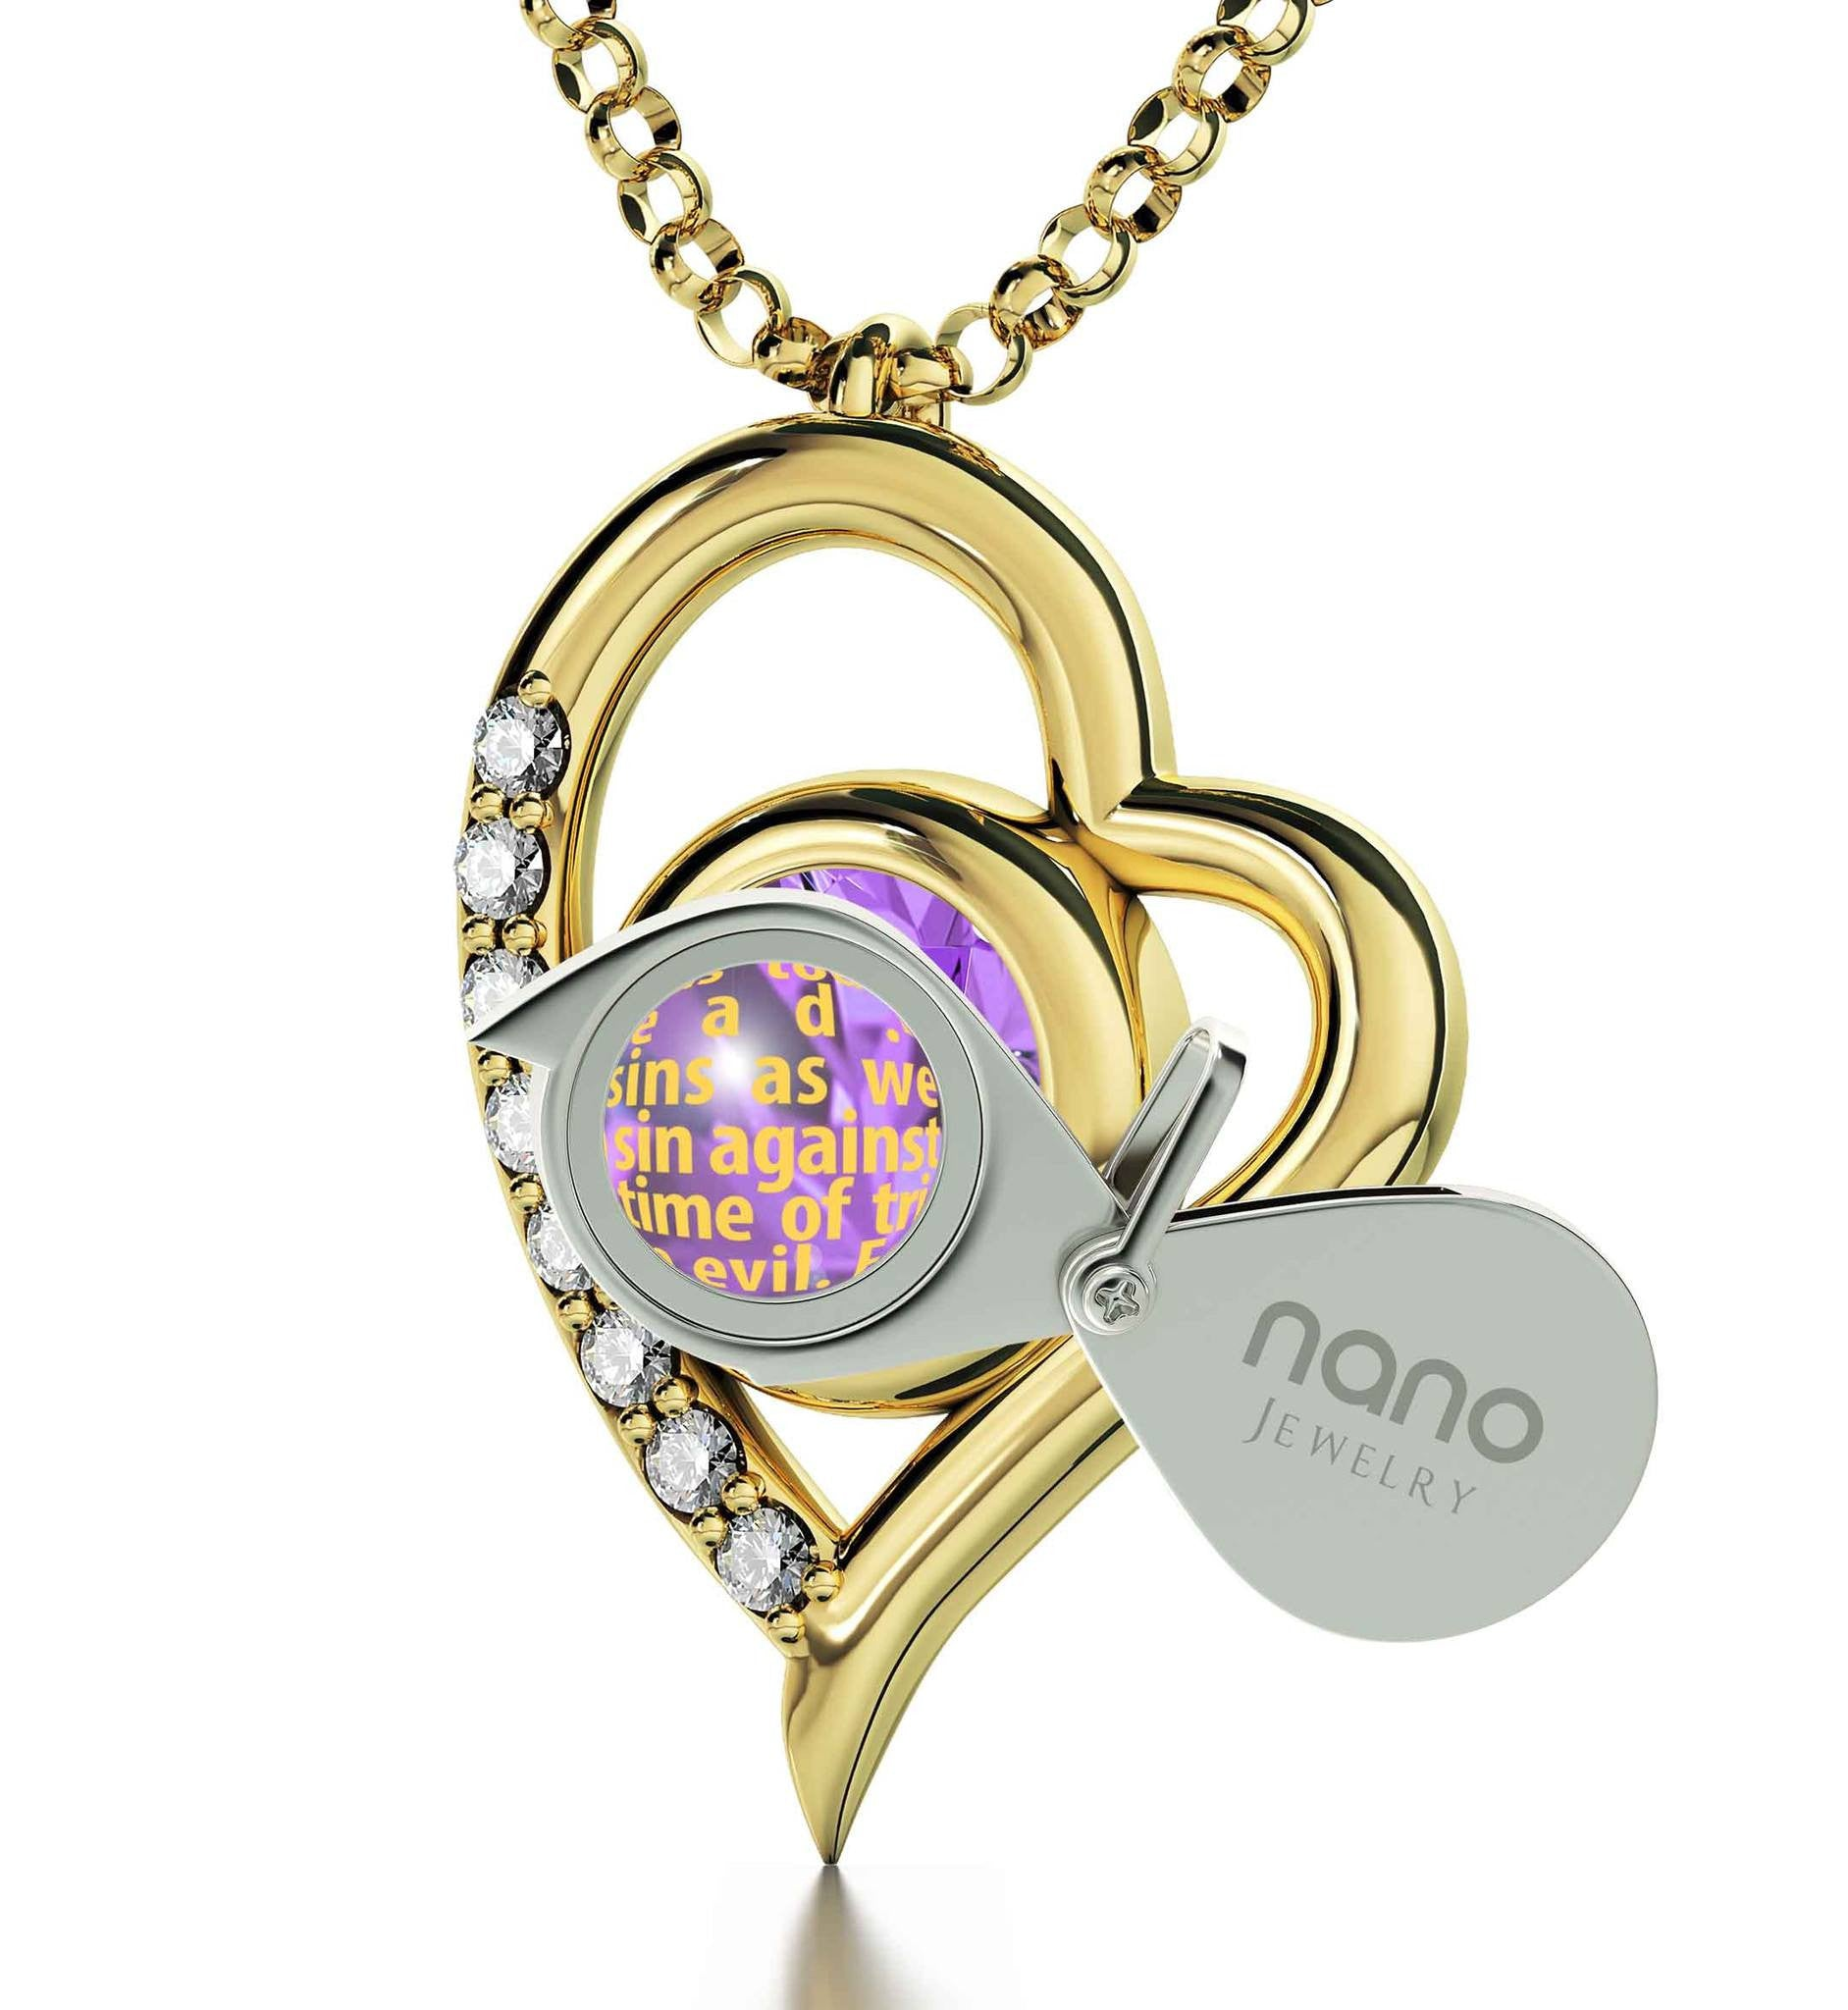 Gift for Christian Women. Get a Religious Pendant now at Nano Jewelry!